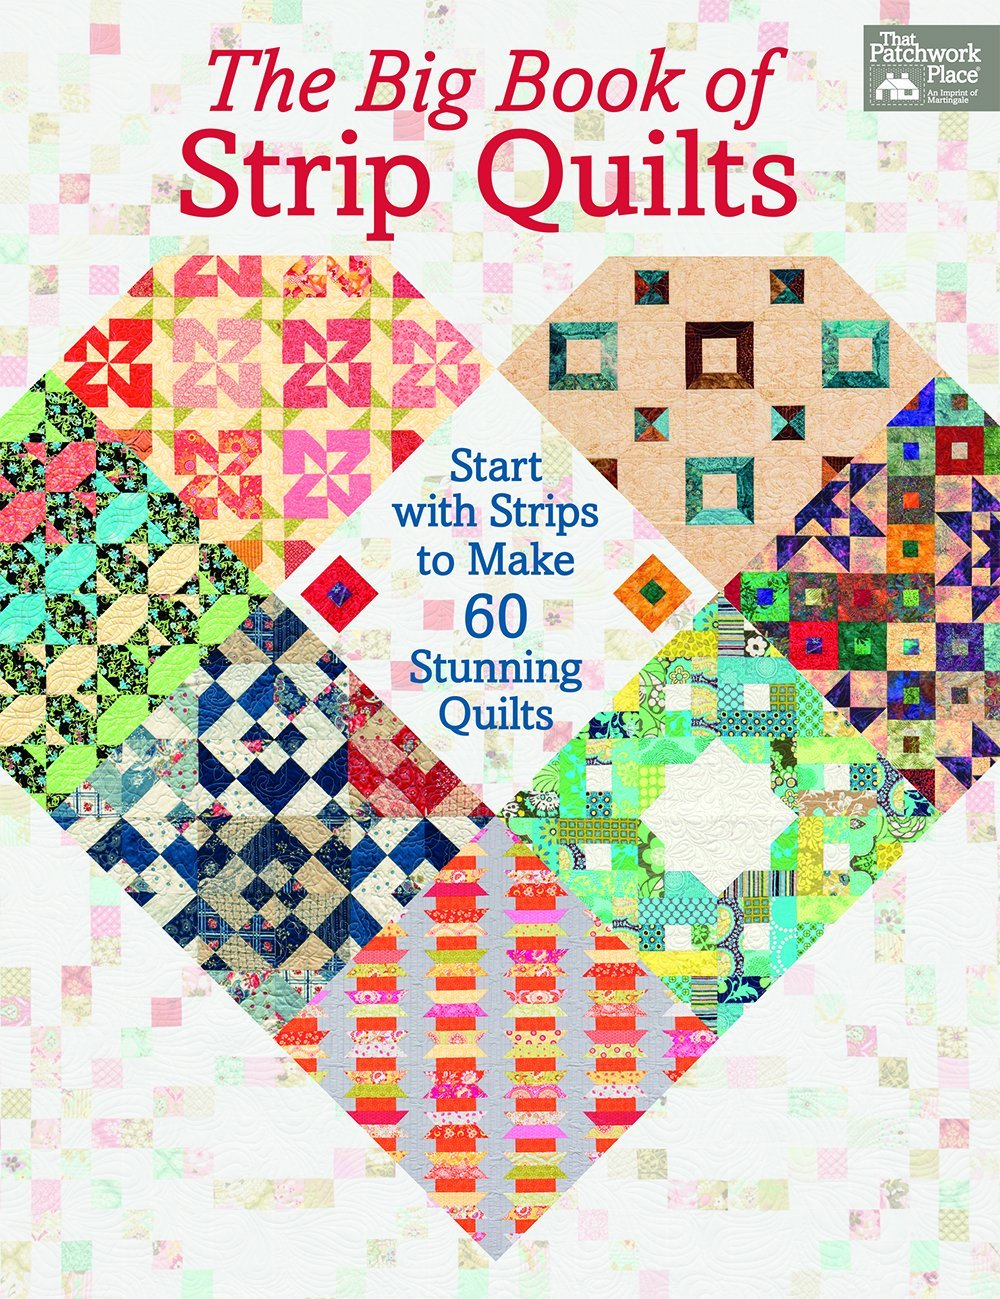 Big Book of Strip Quilts - Patchwork Place